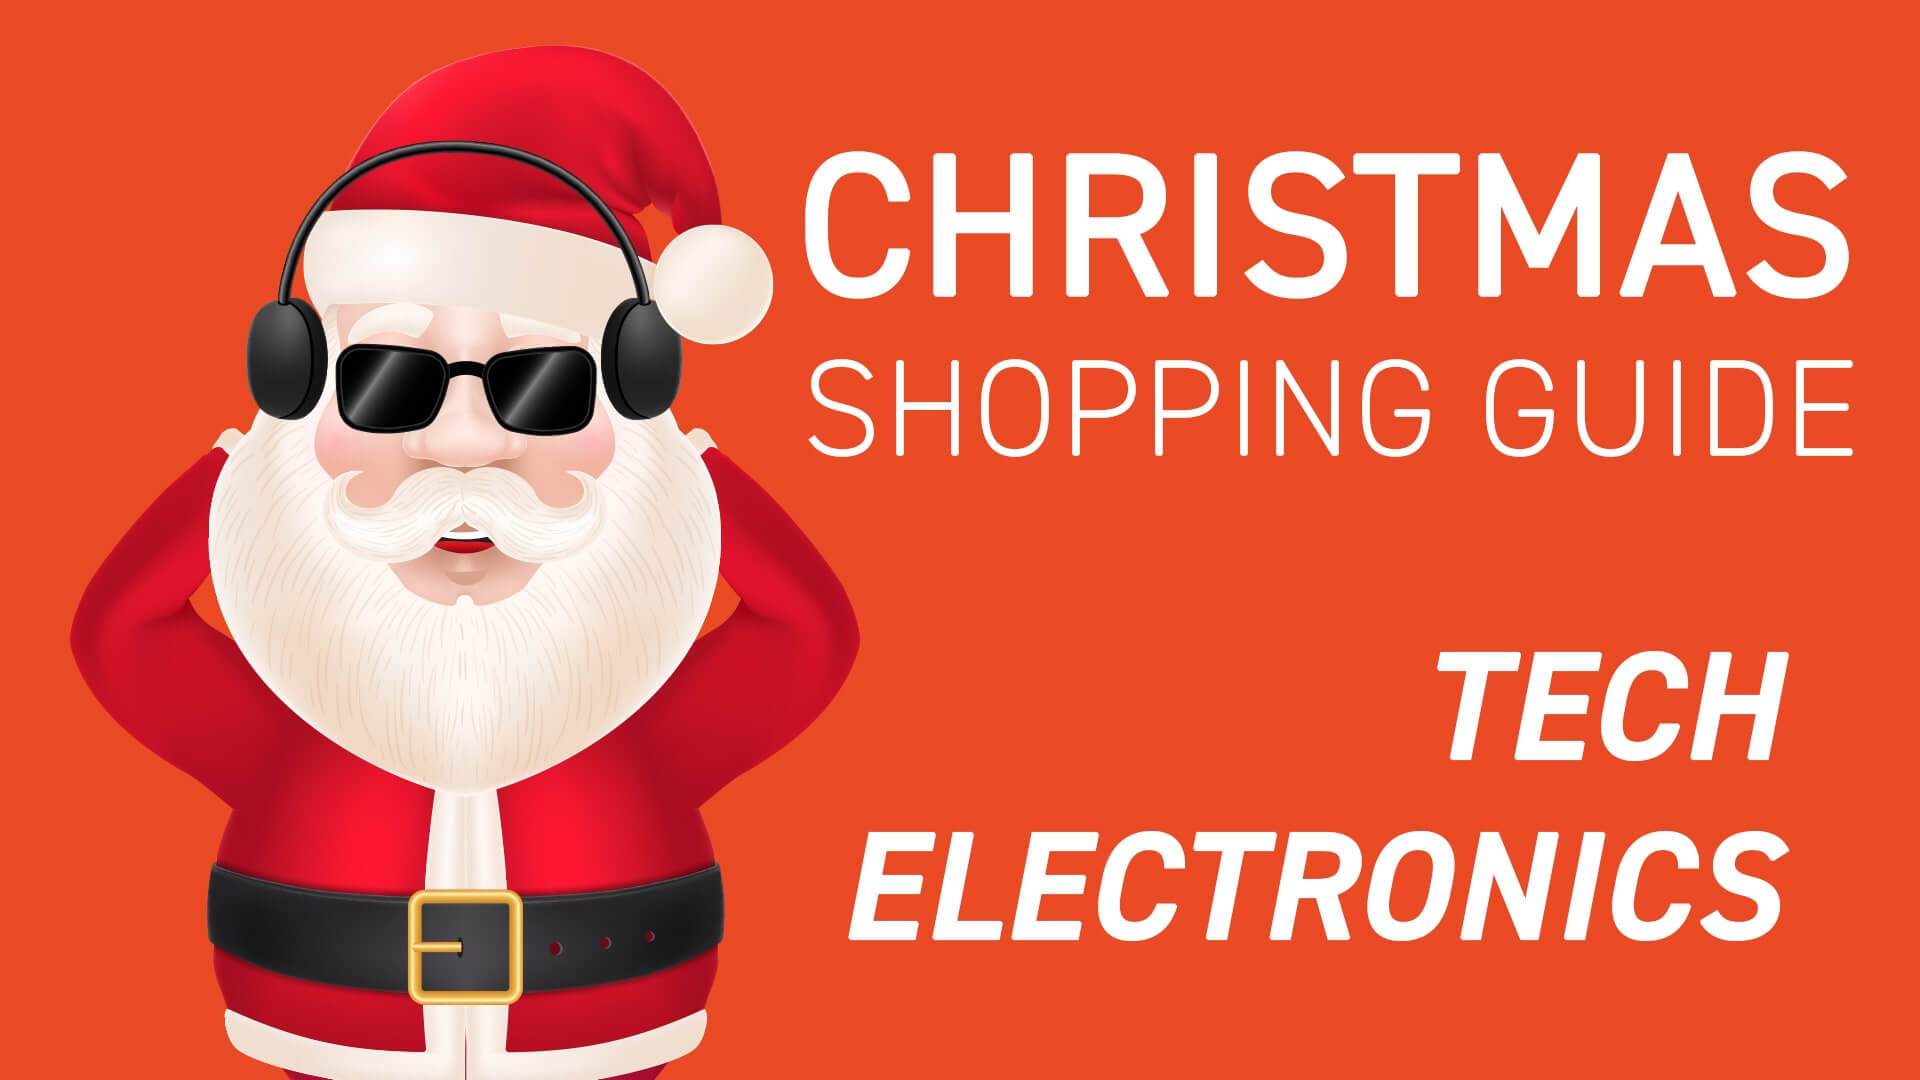 6 Christmas gifts for the tech into electronics